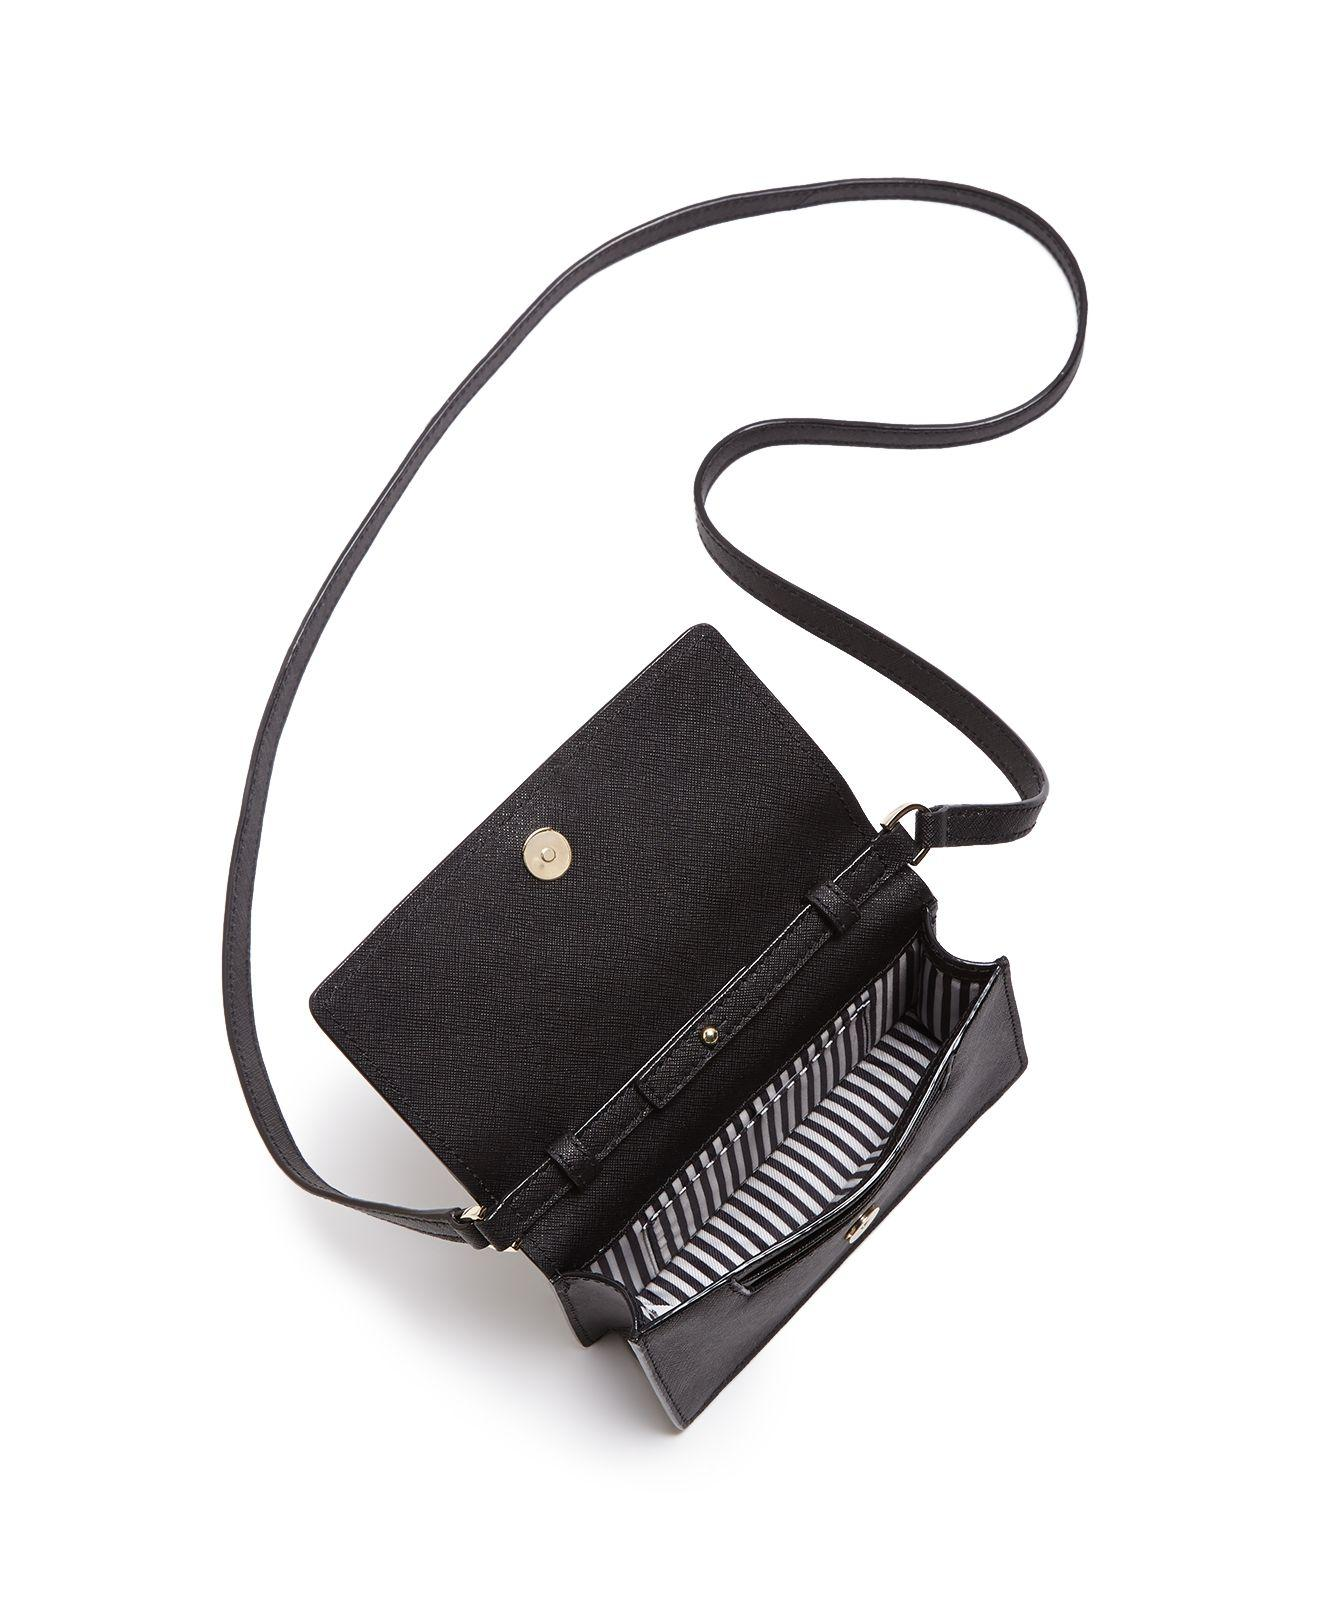 Kate spade new york Arielle Saffiano Leather Crossbody in